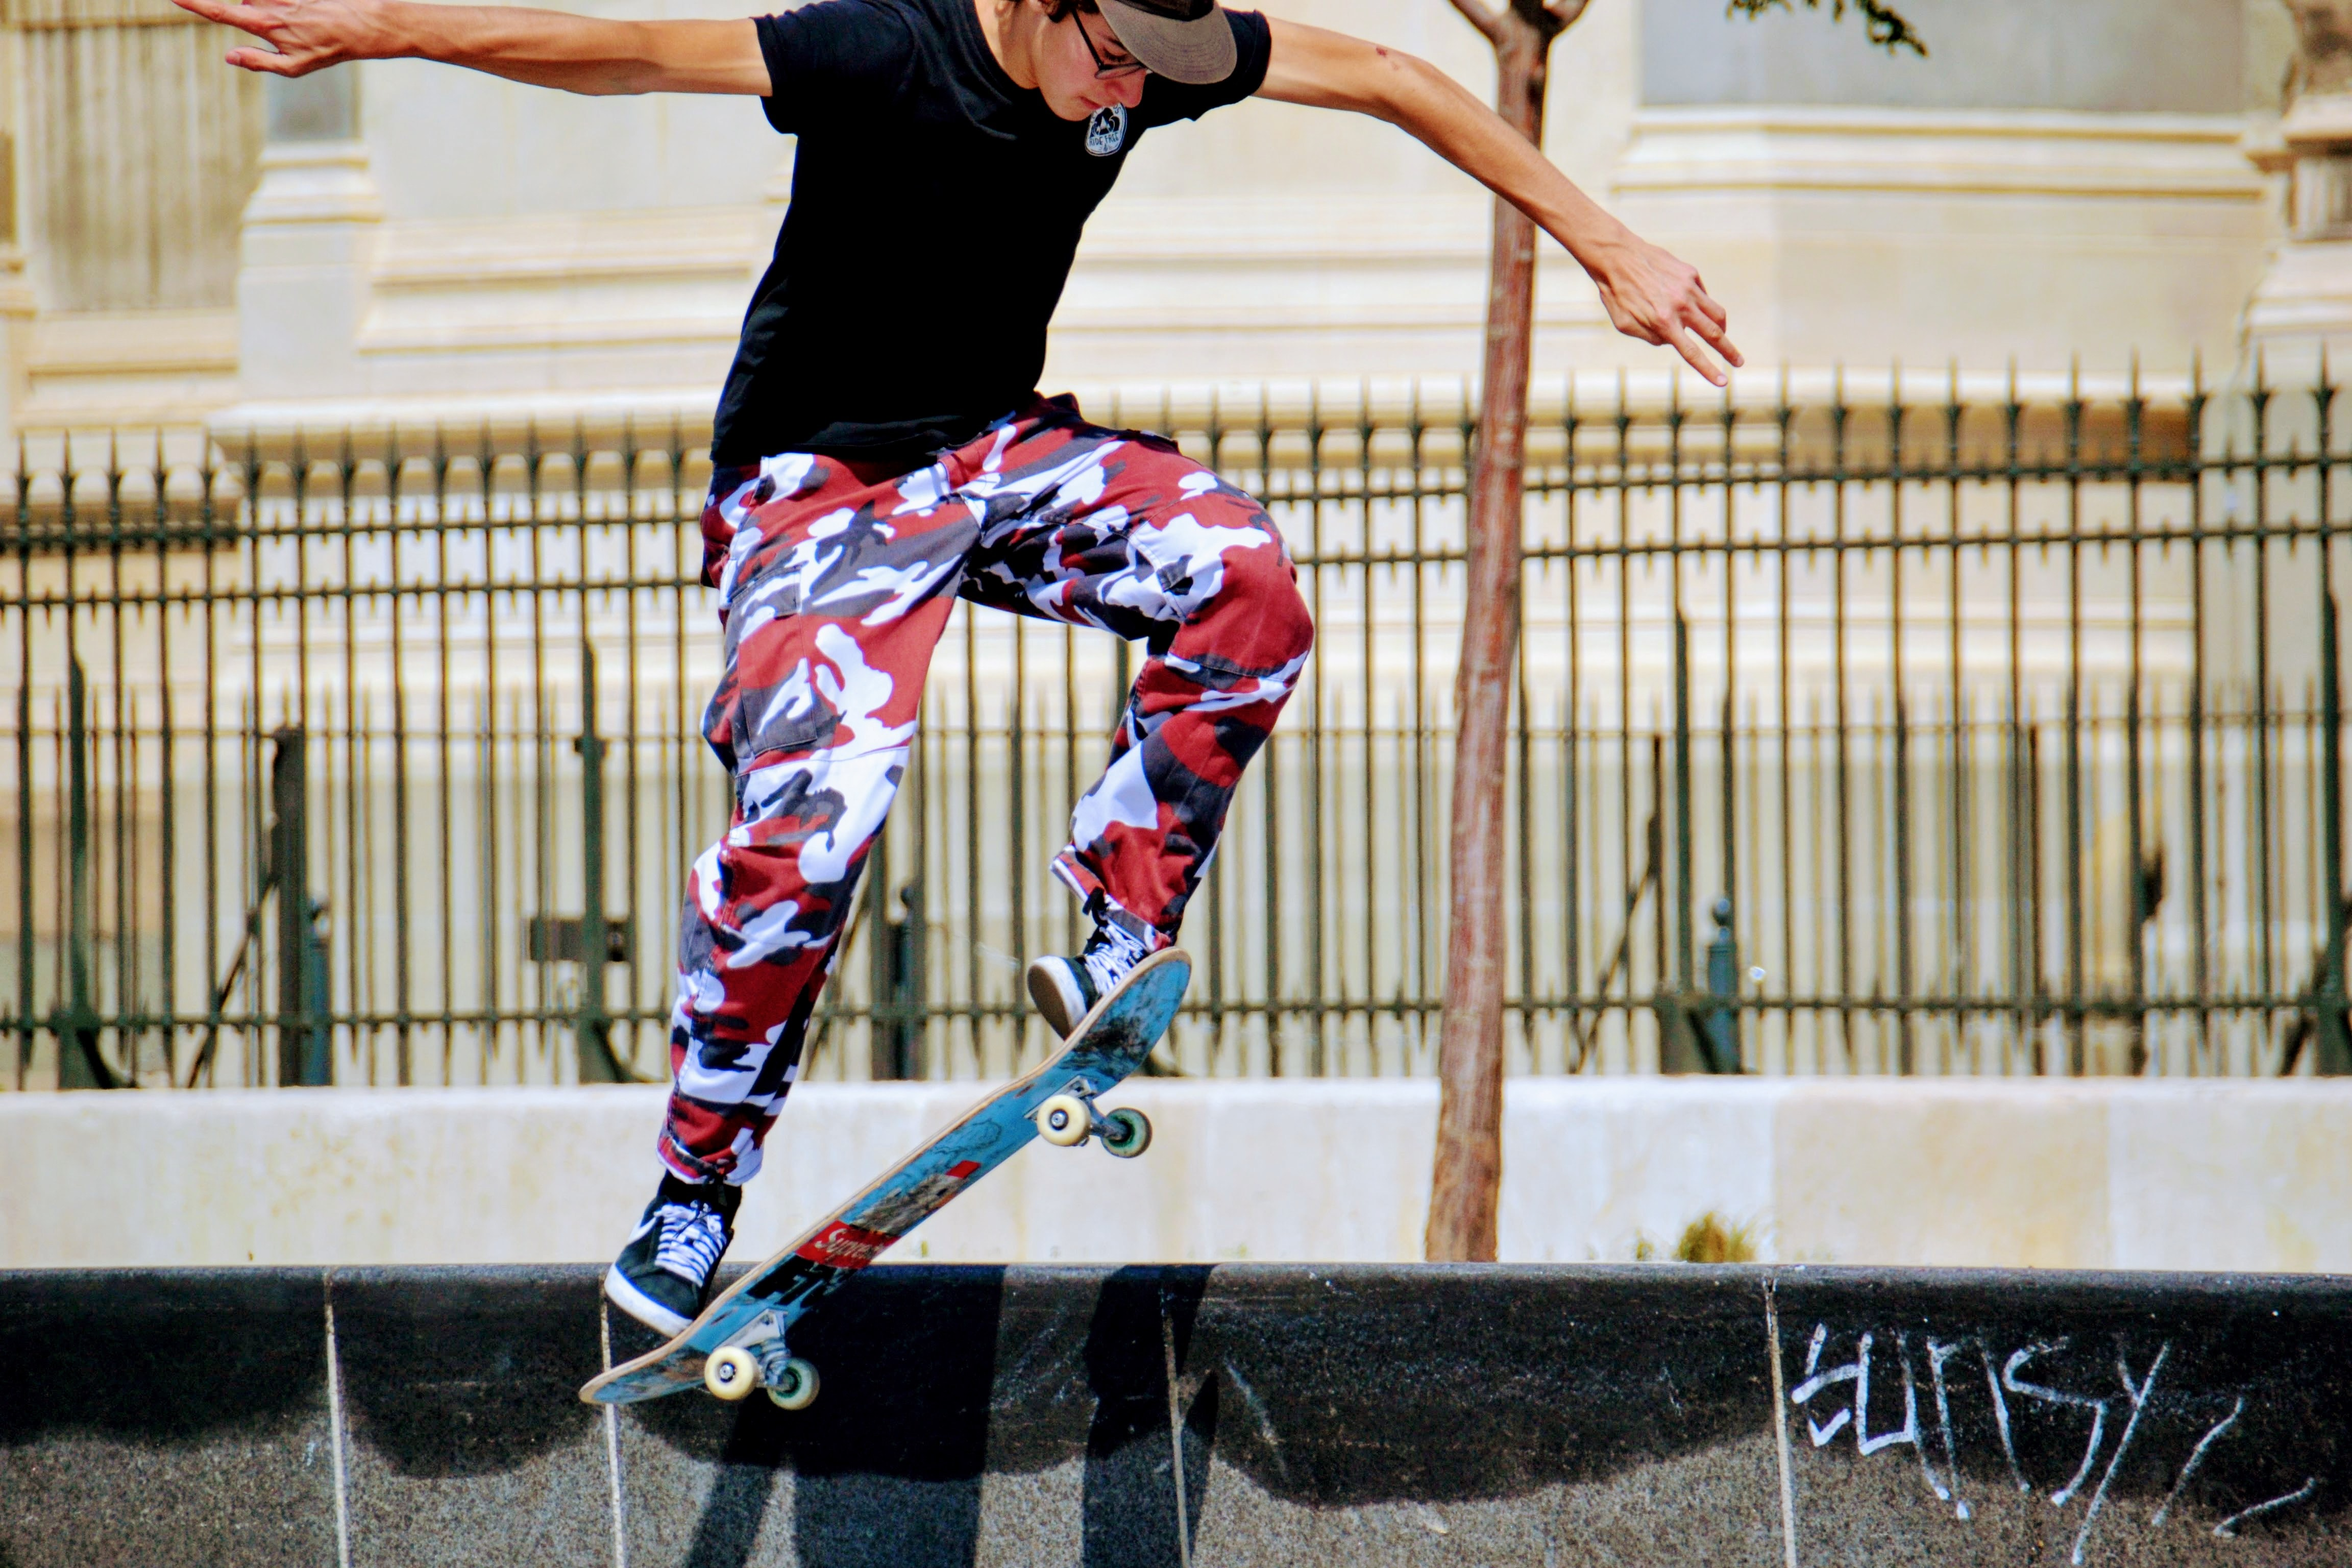 A person in a baseball cap and camouflage pants does a skateboard trick